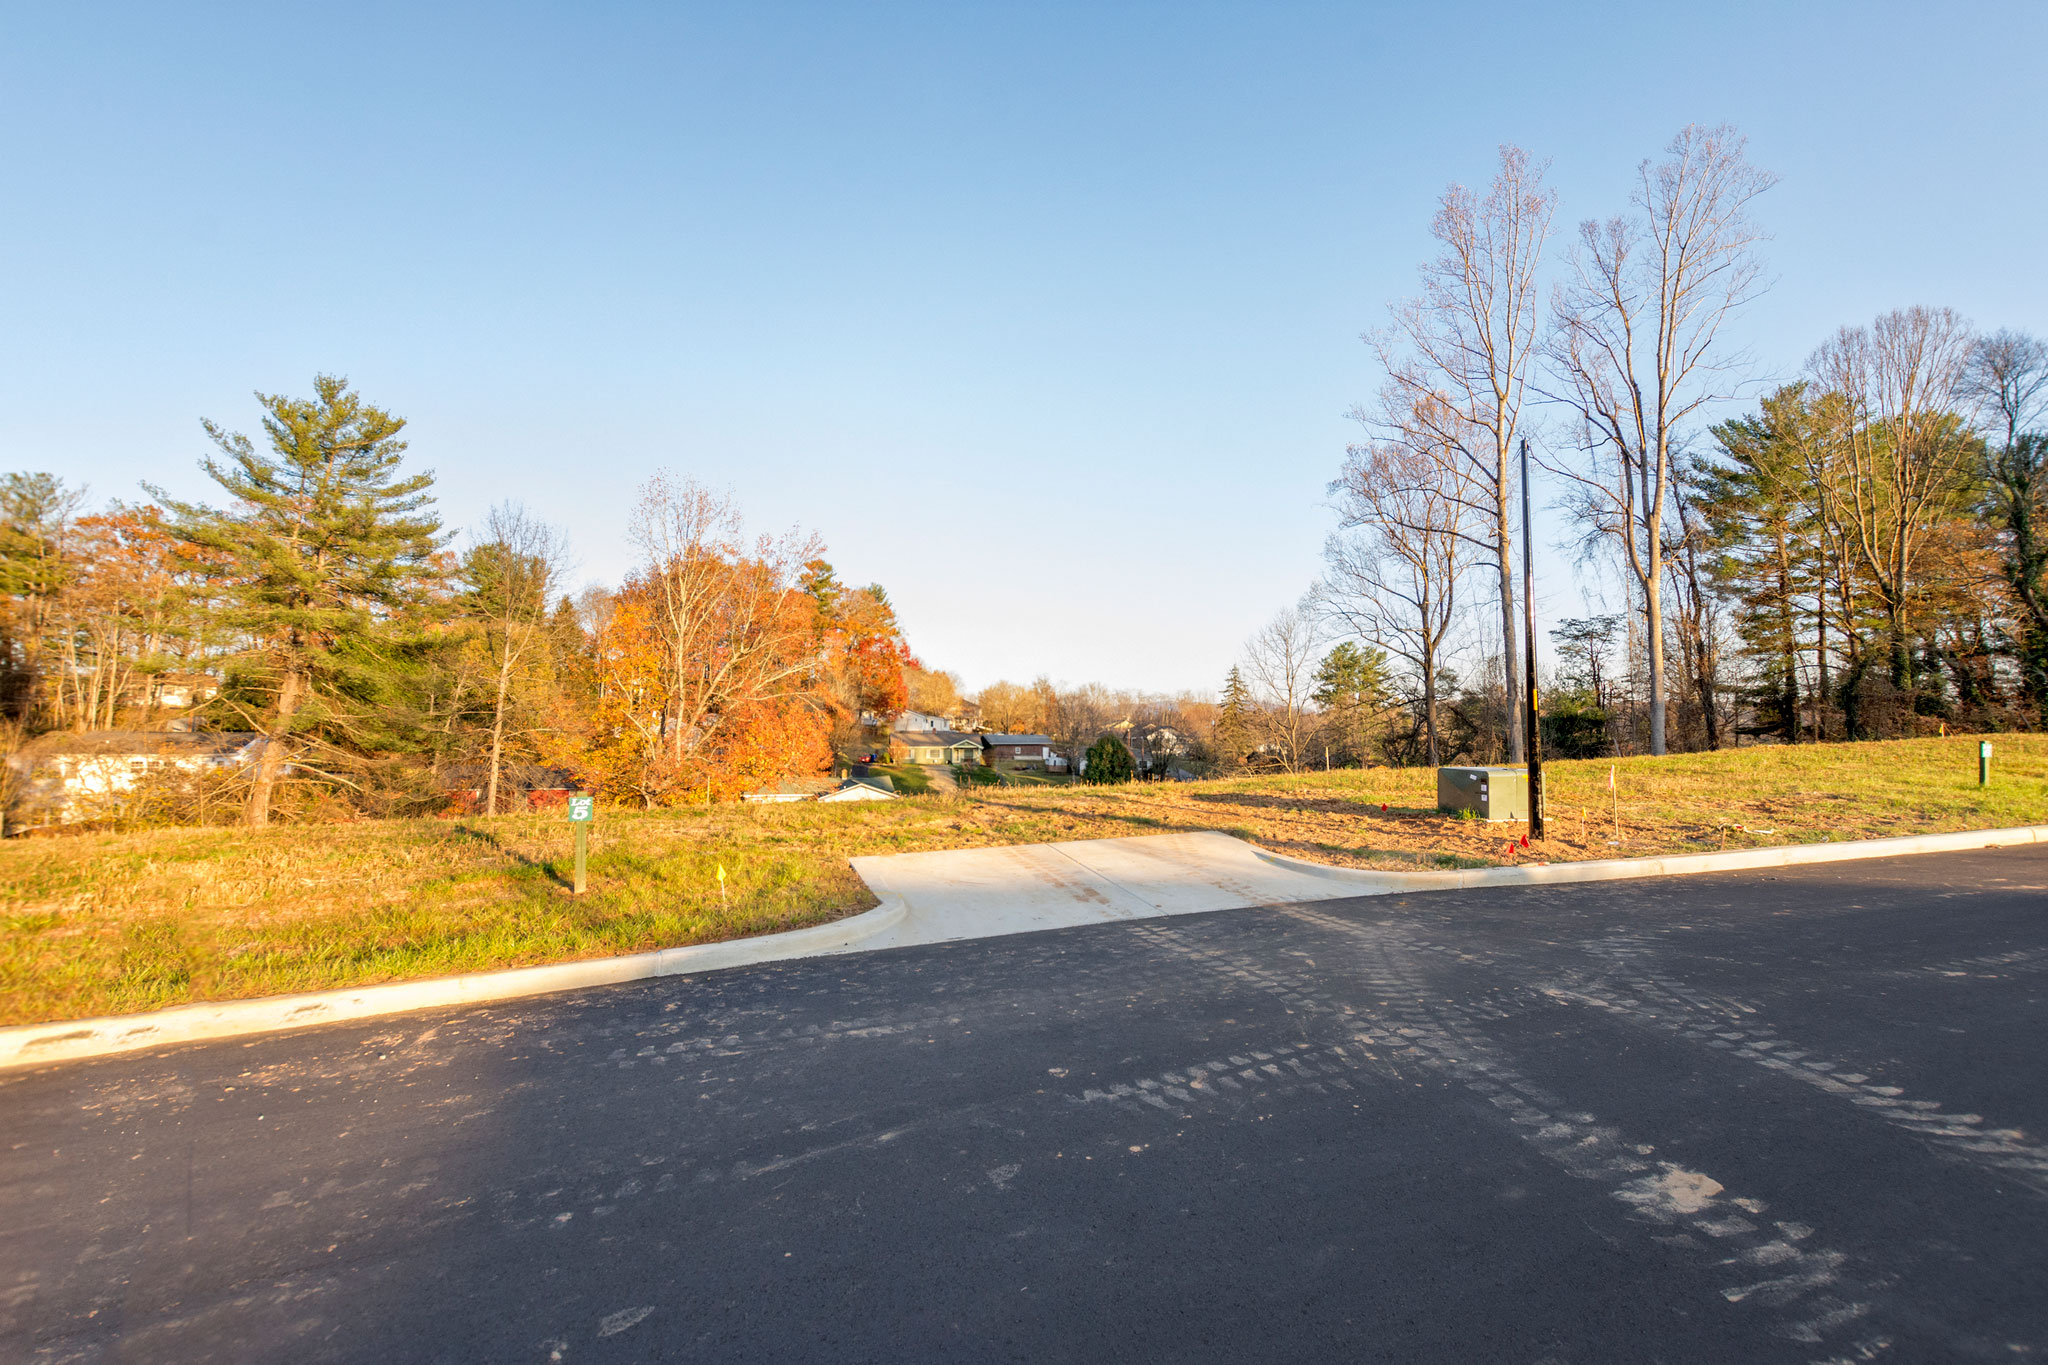 Lot 5 at Malvern Walk, West Asheville